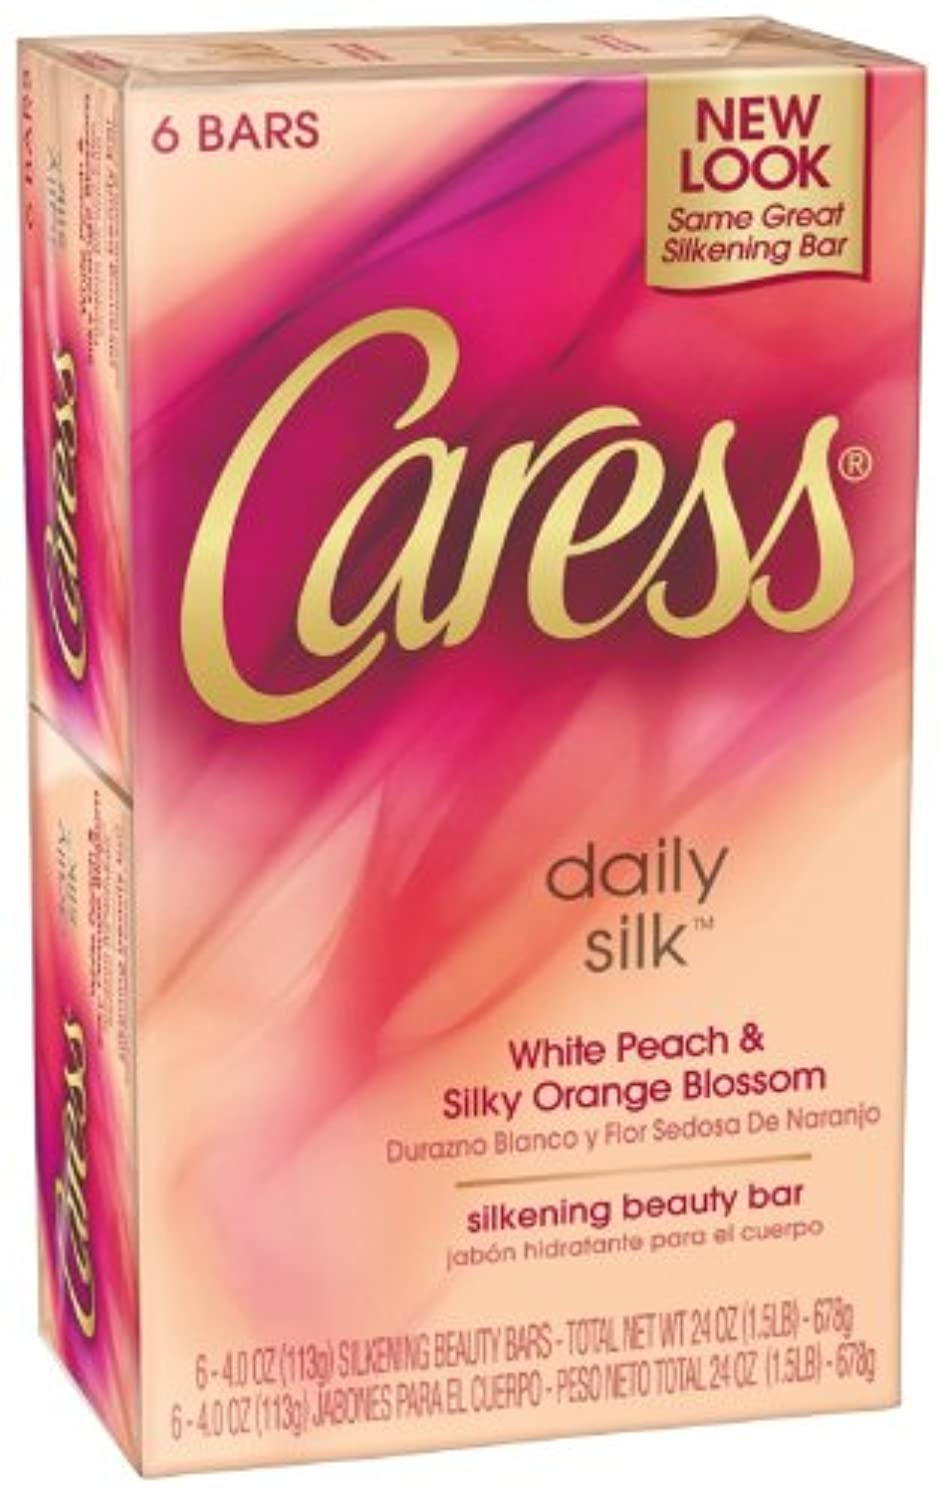 Caress Daily Silk Beauty Soap Bar - (6 X 4 Ounce) by Caress